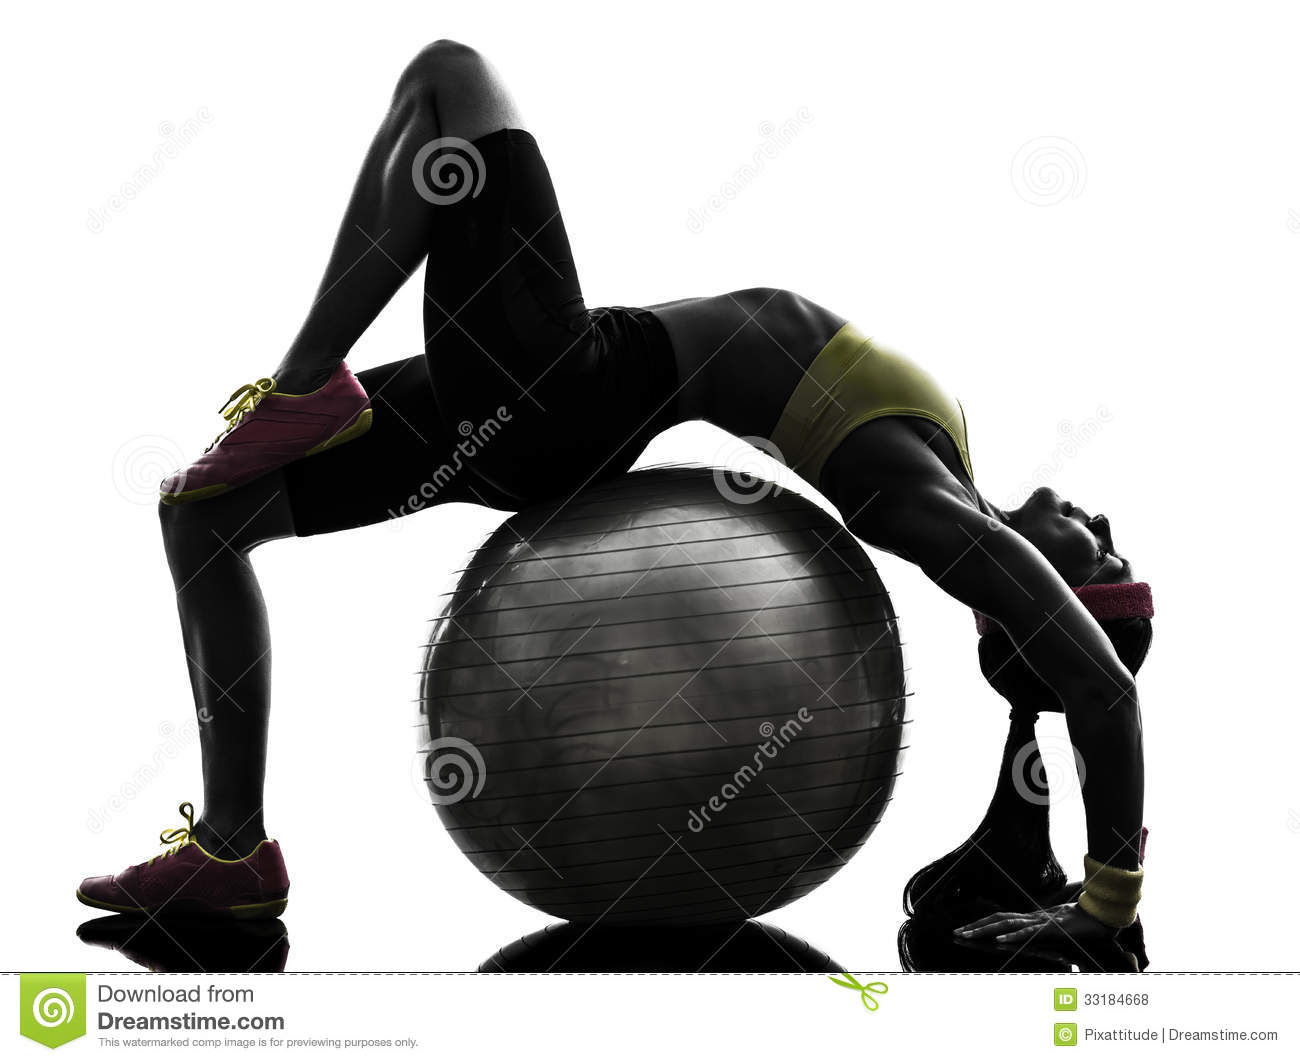 supple-woman-exercising-fitness-ball-workout-silhouette-one-white-background-33184668.jpg